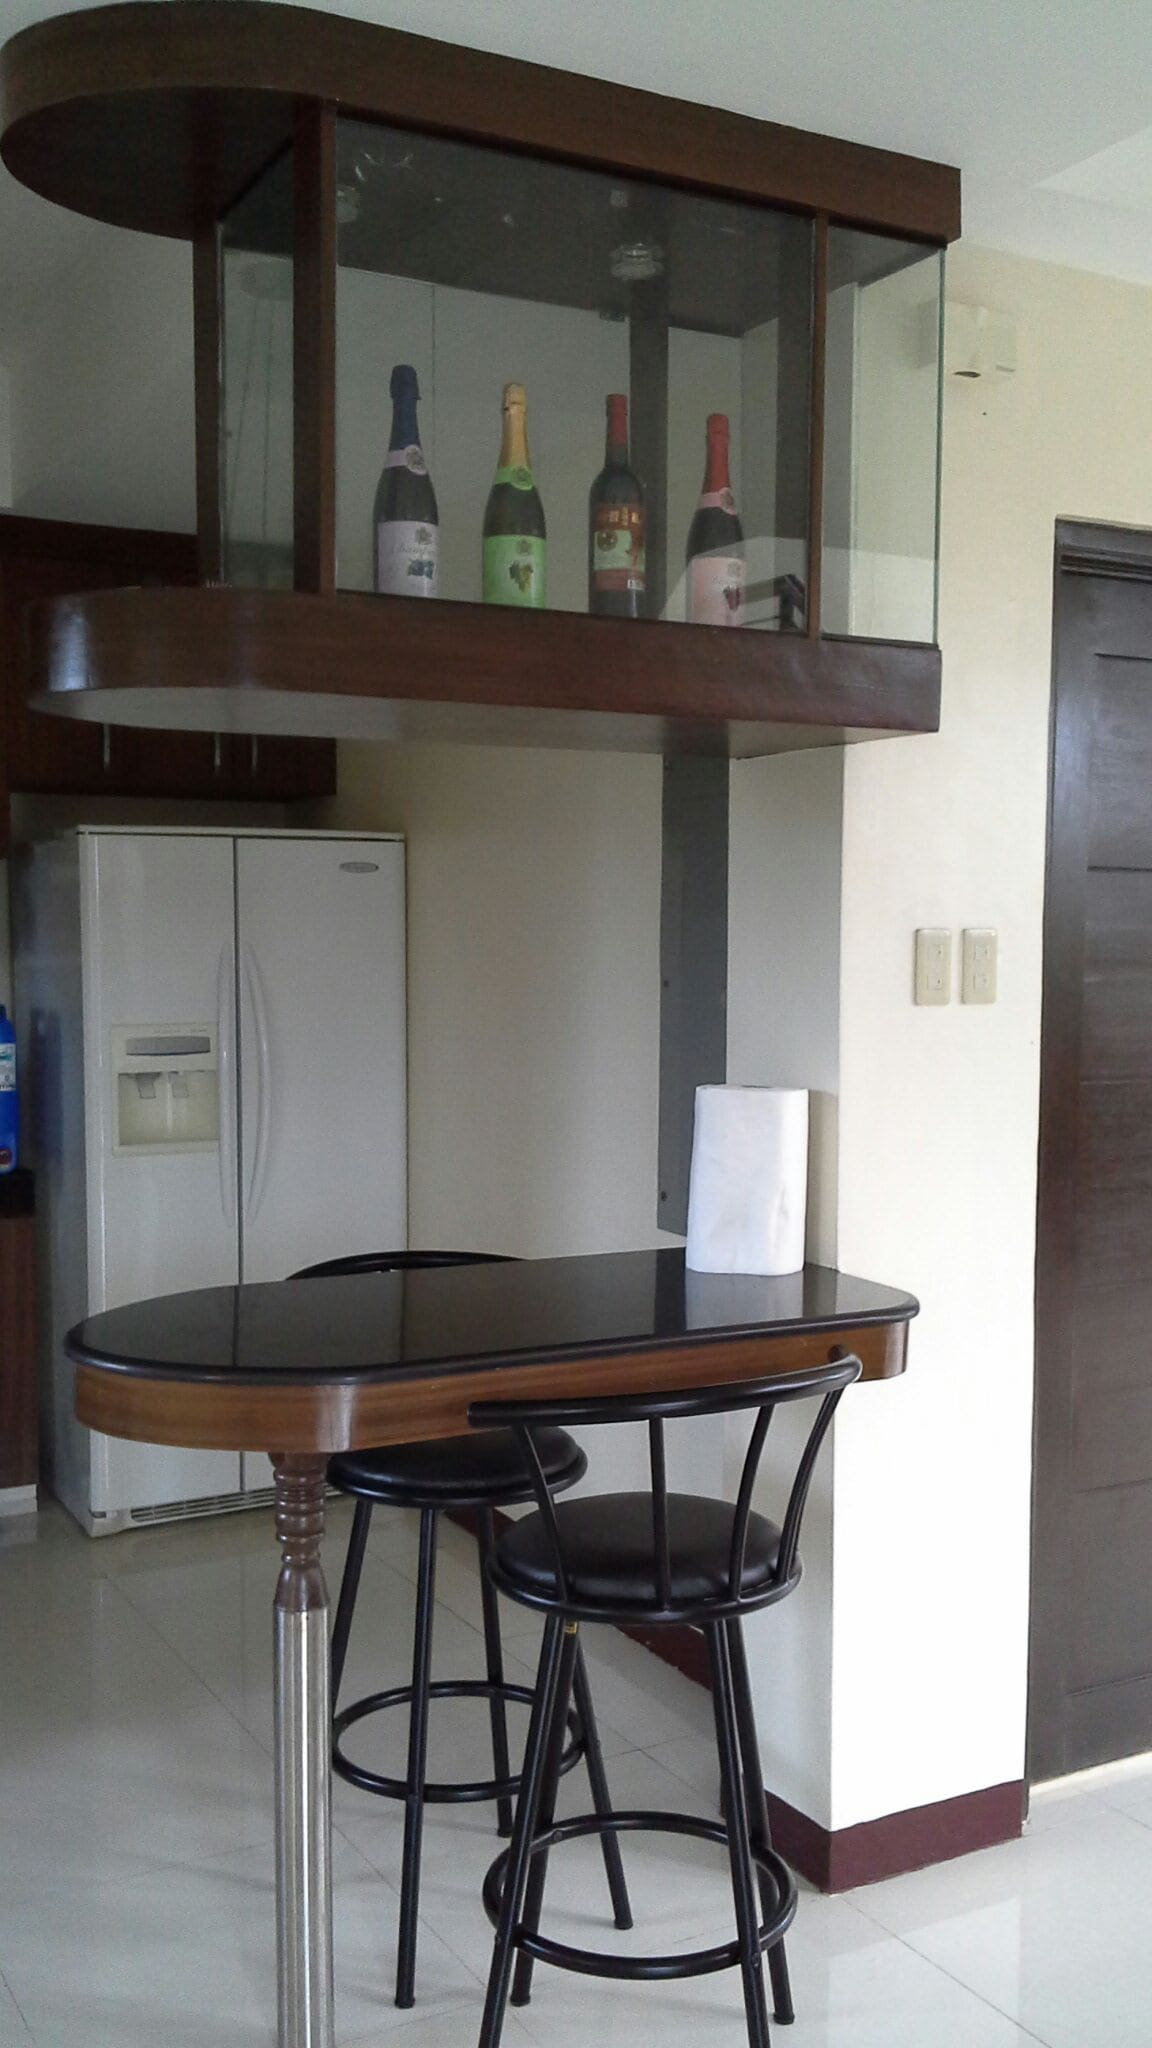 Furnishes 4 bedrooms, 3 baths,